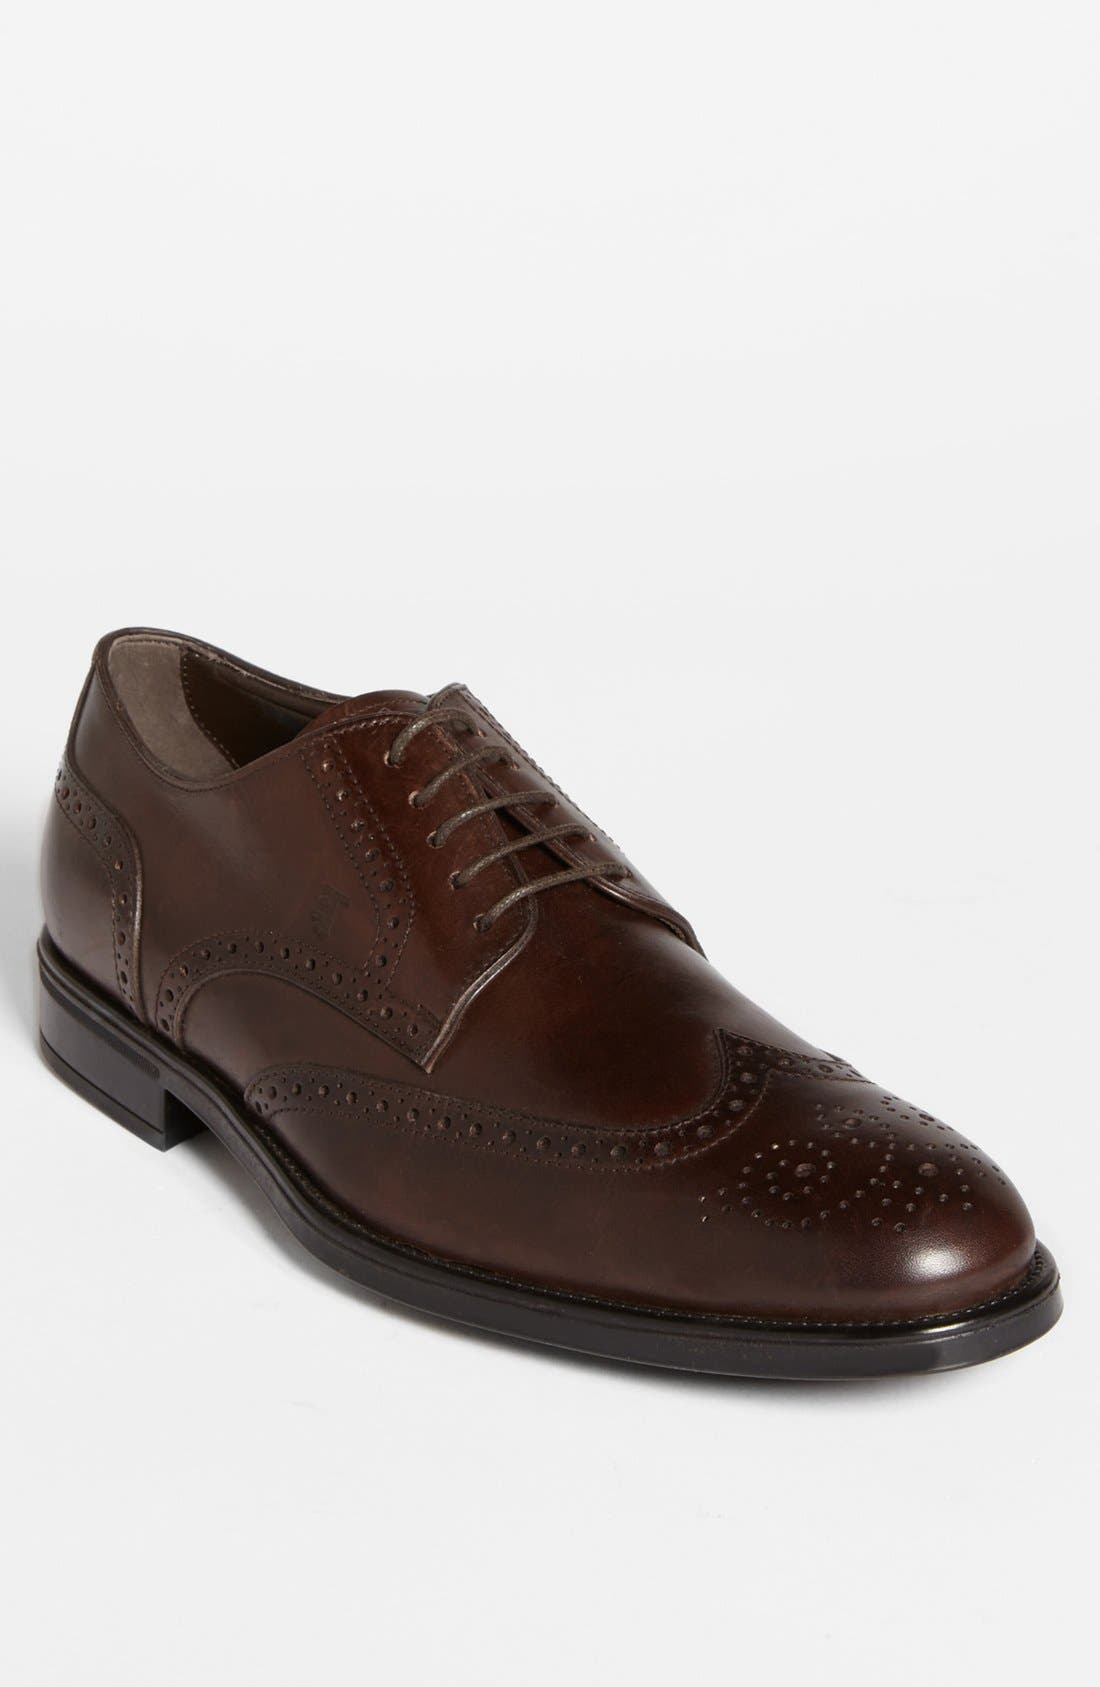 Main Image - Tod's 'Derby' Wingtip